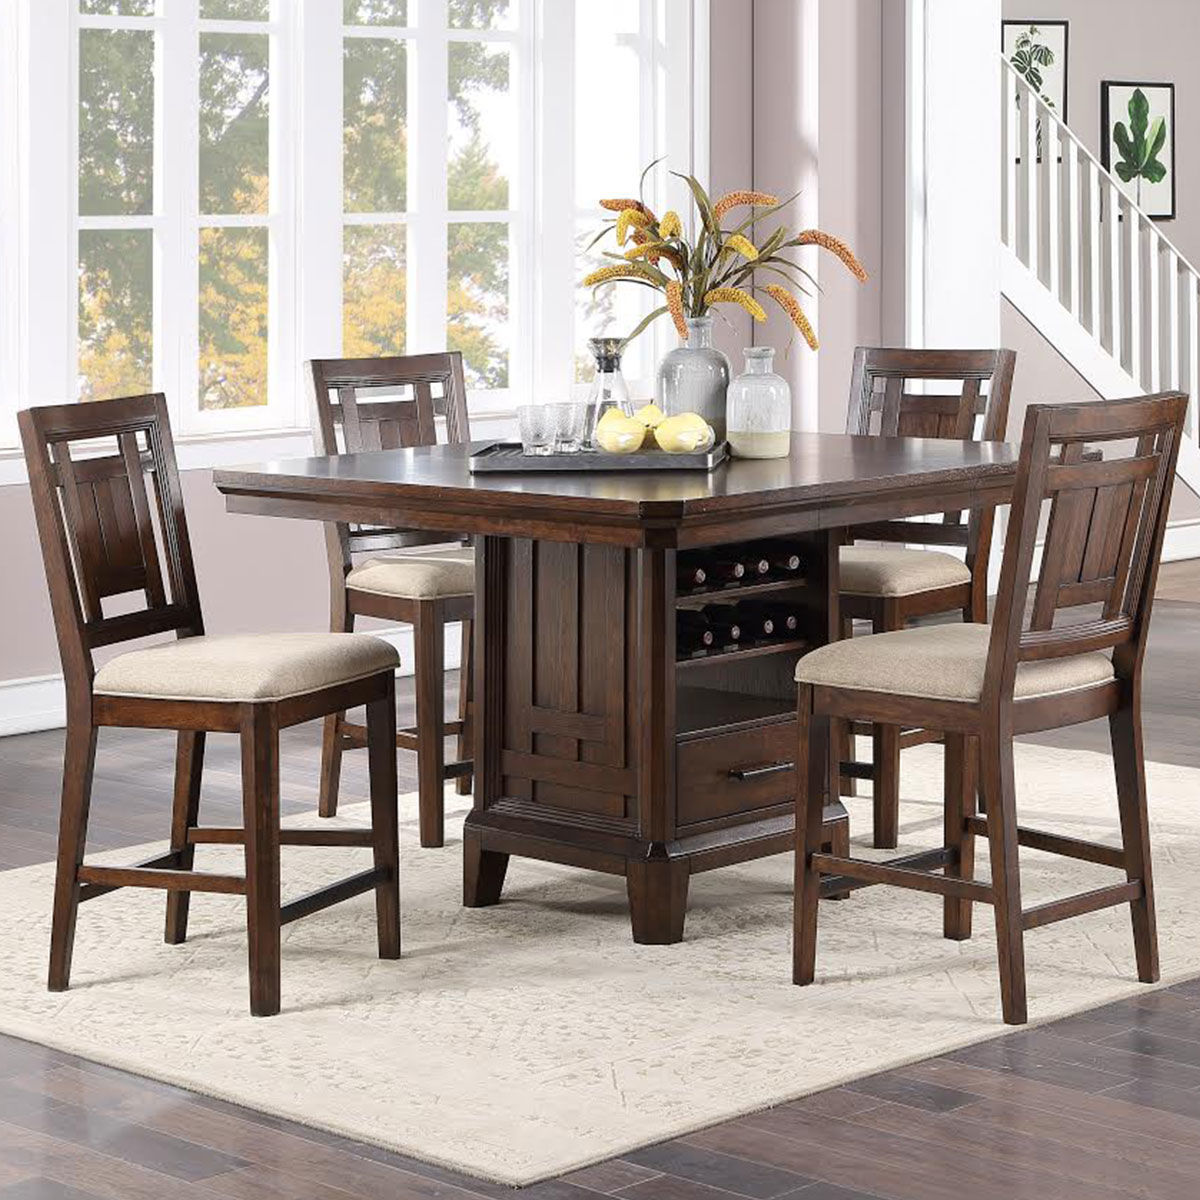 Picture of KENTWOOD 5PC TALL DINING SET